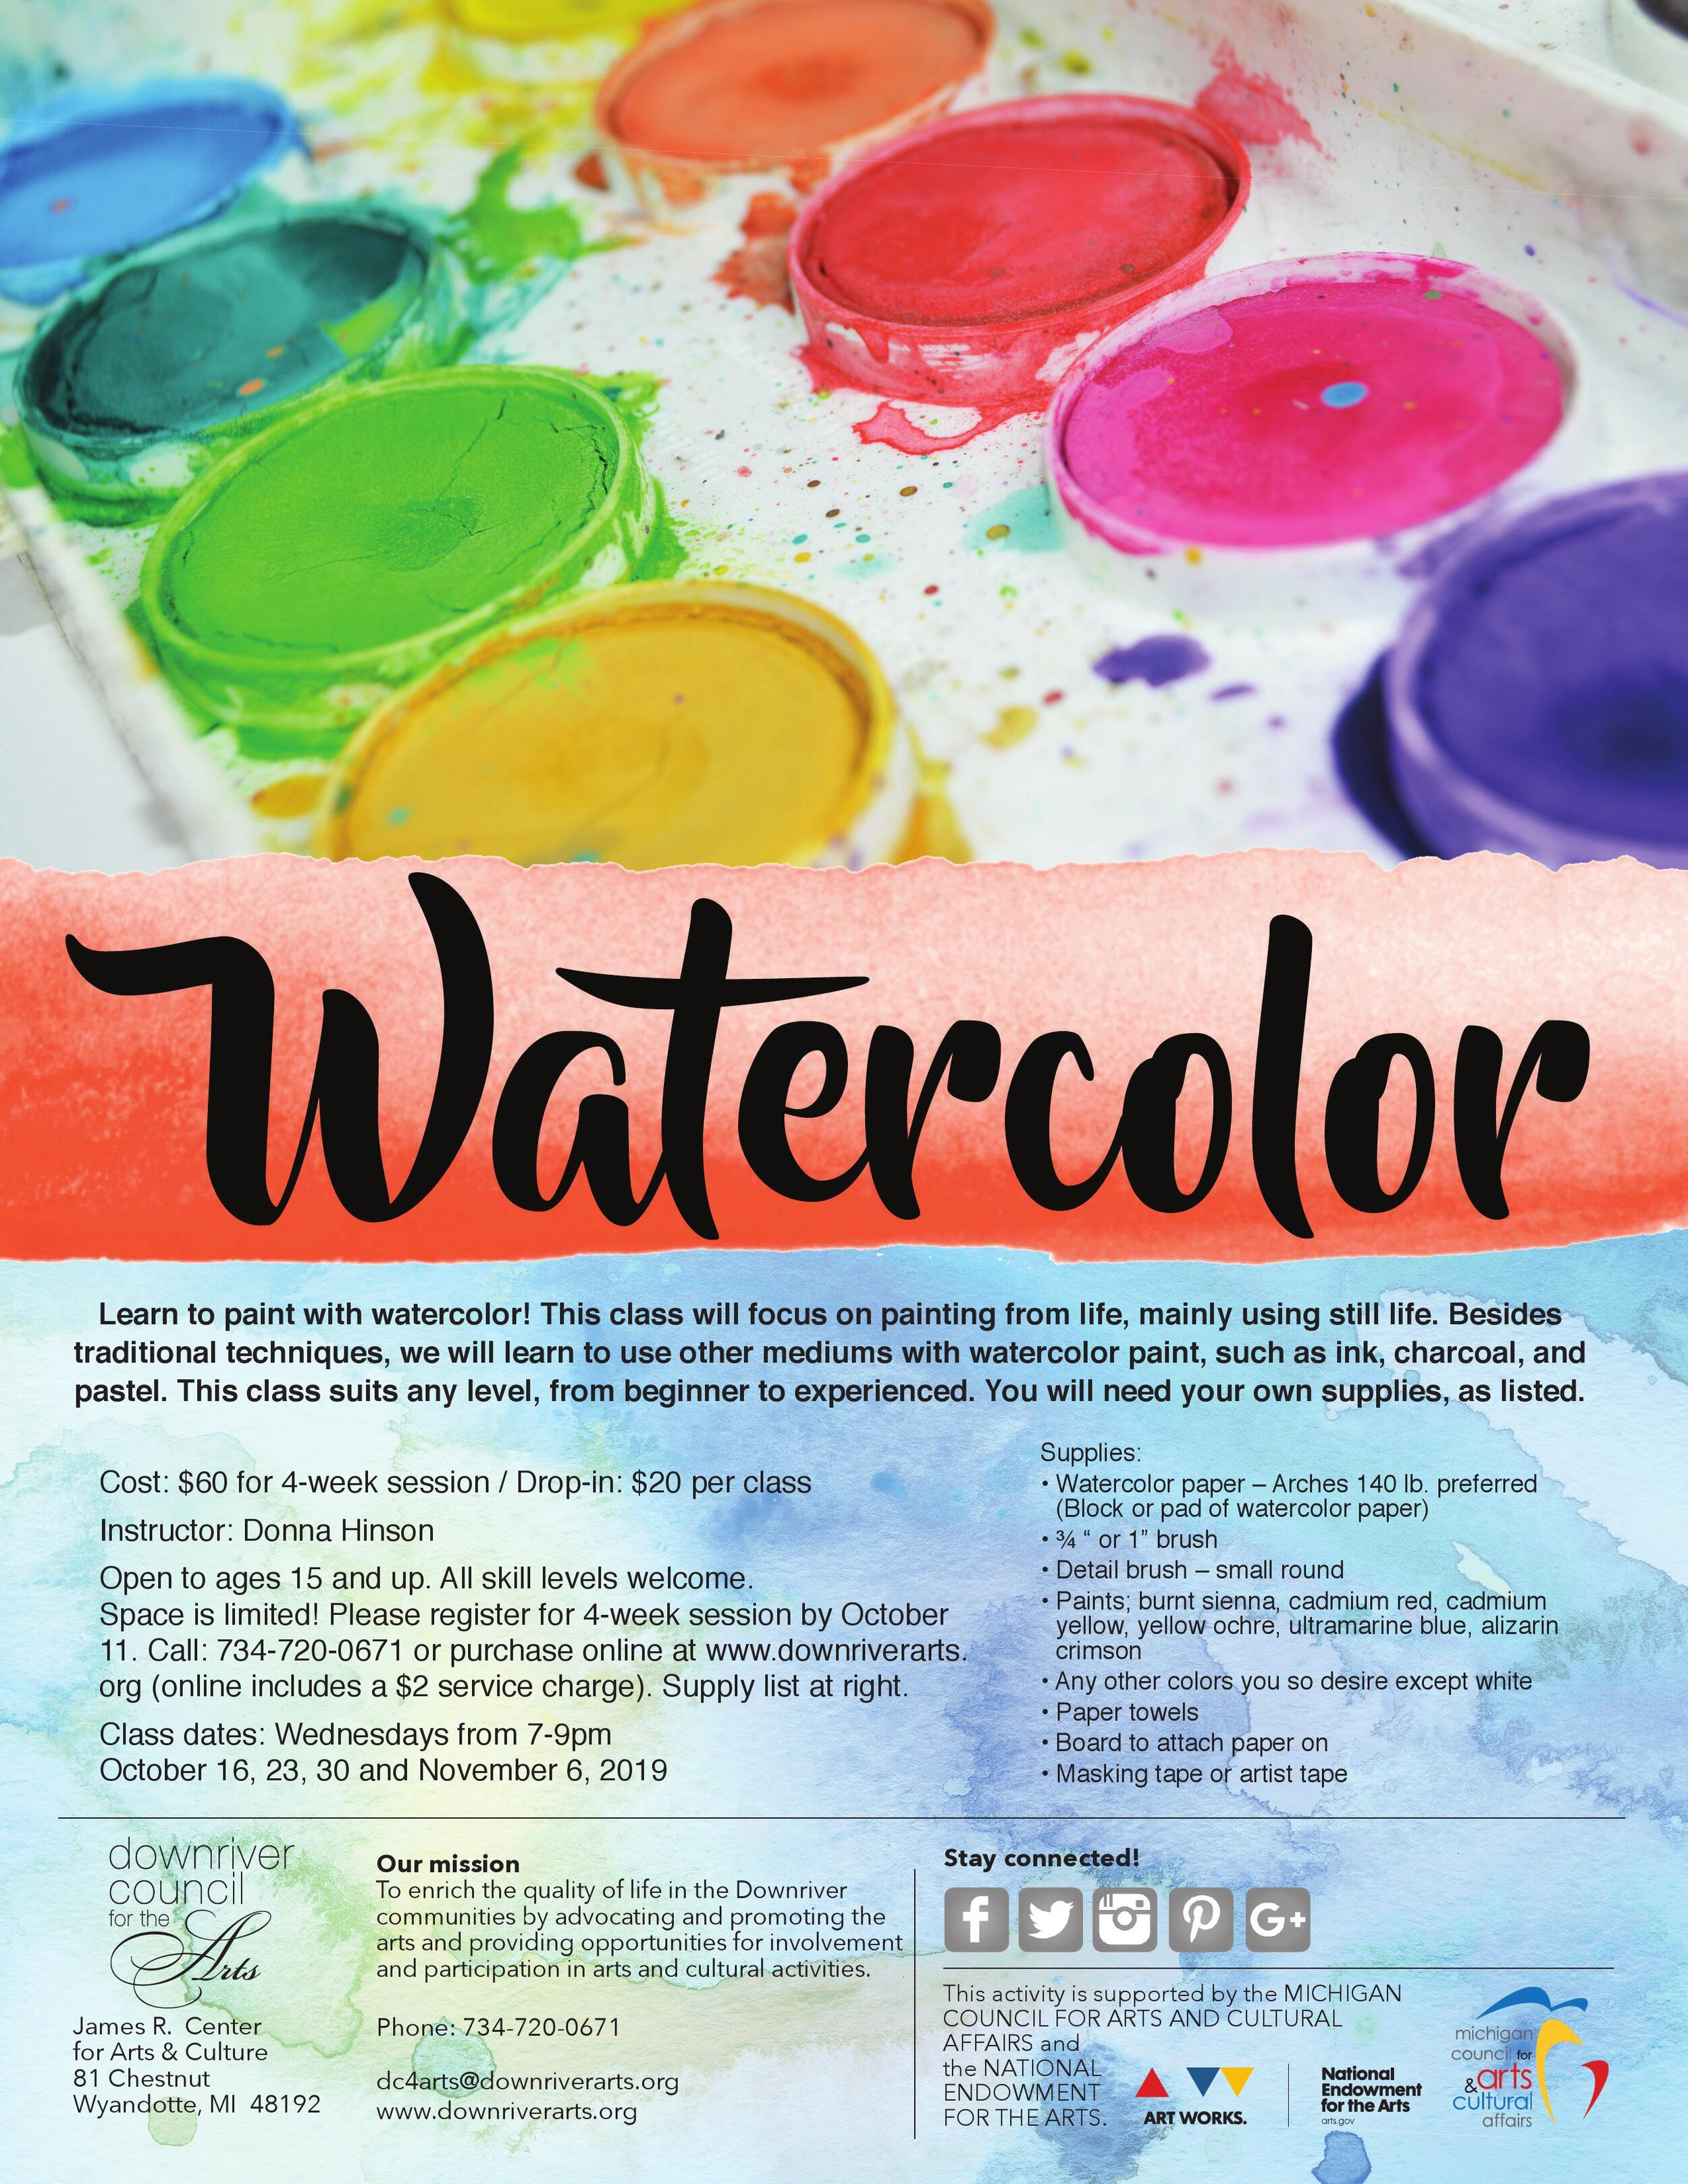 Watercolor 1019-85x11_00001.jpg